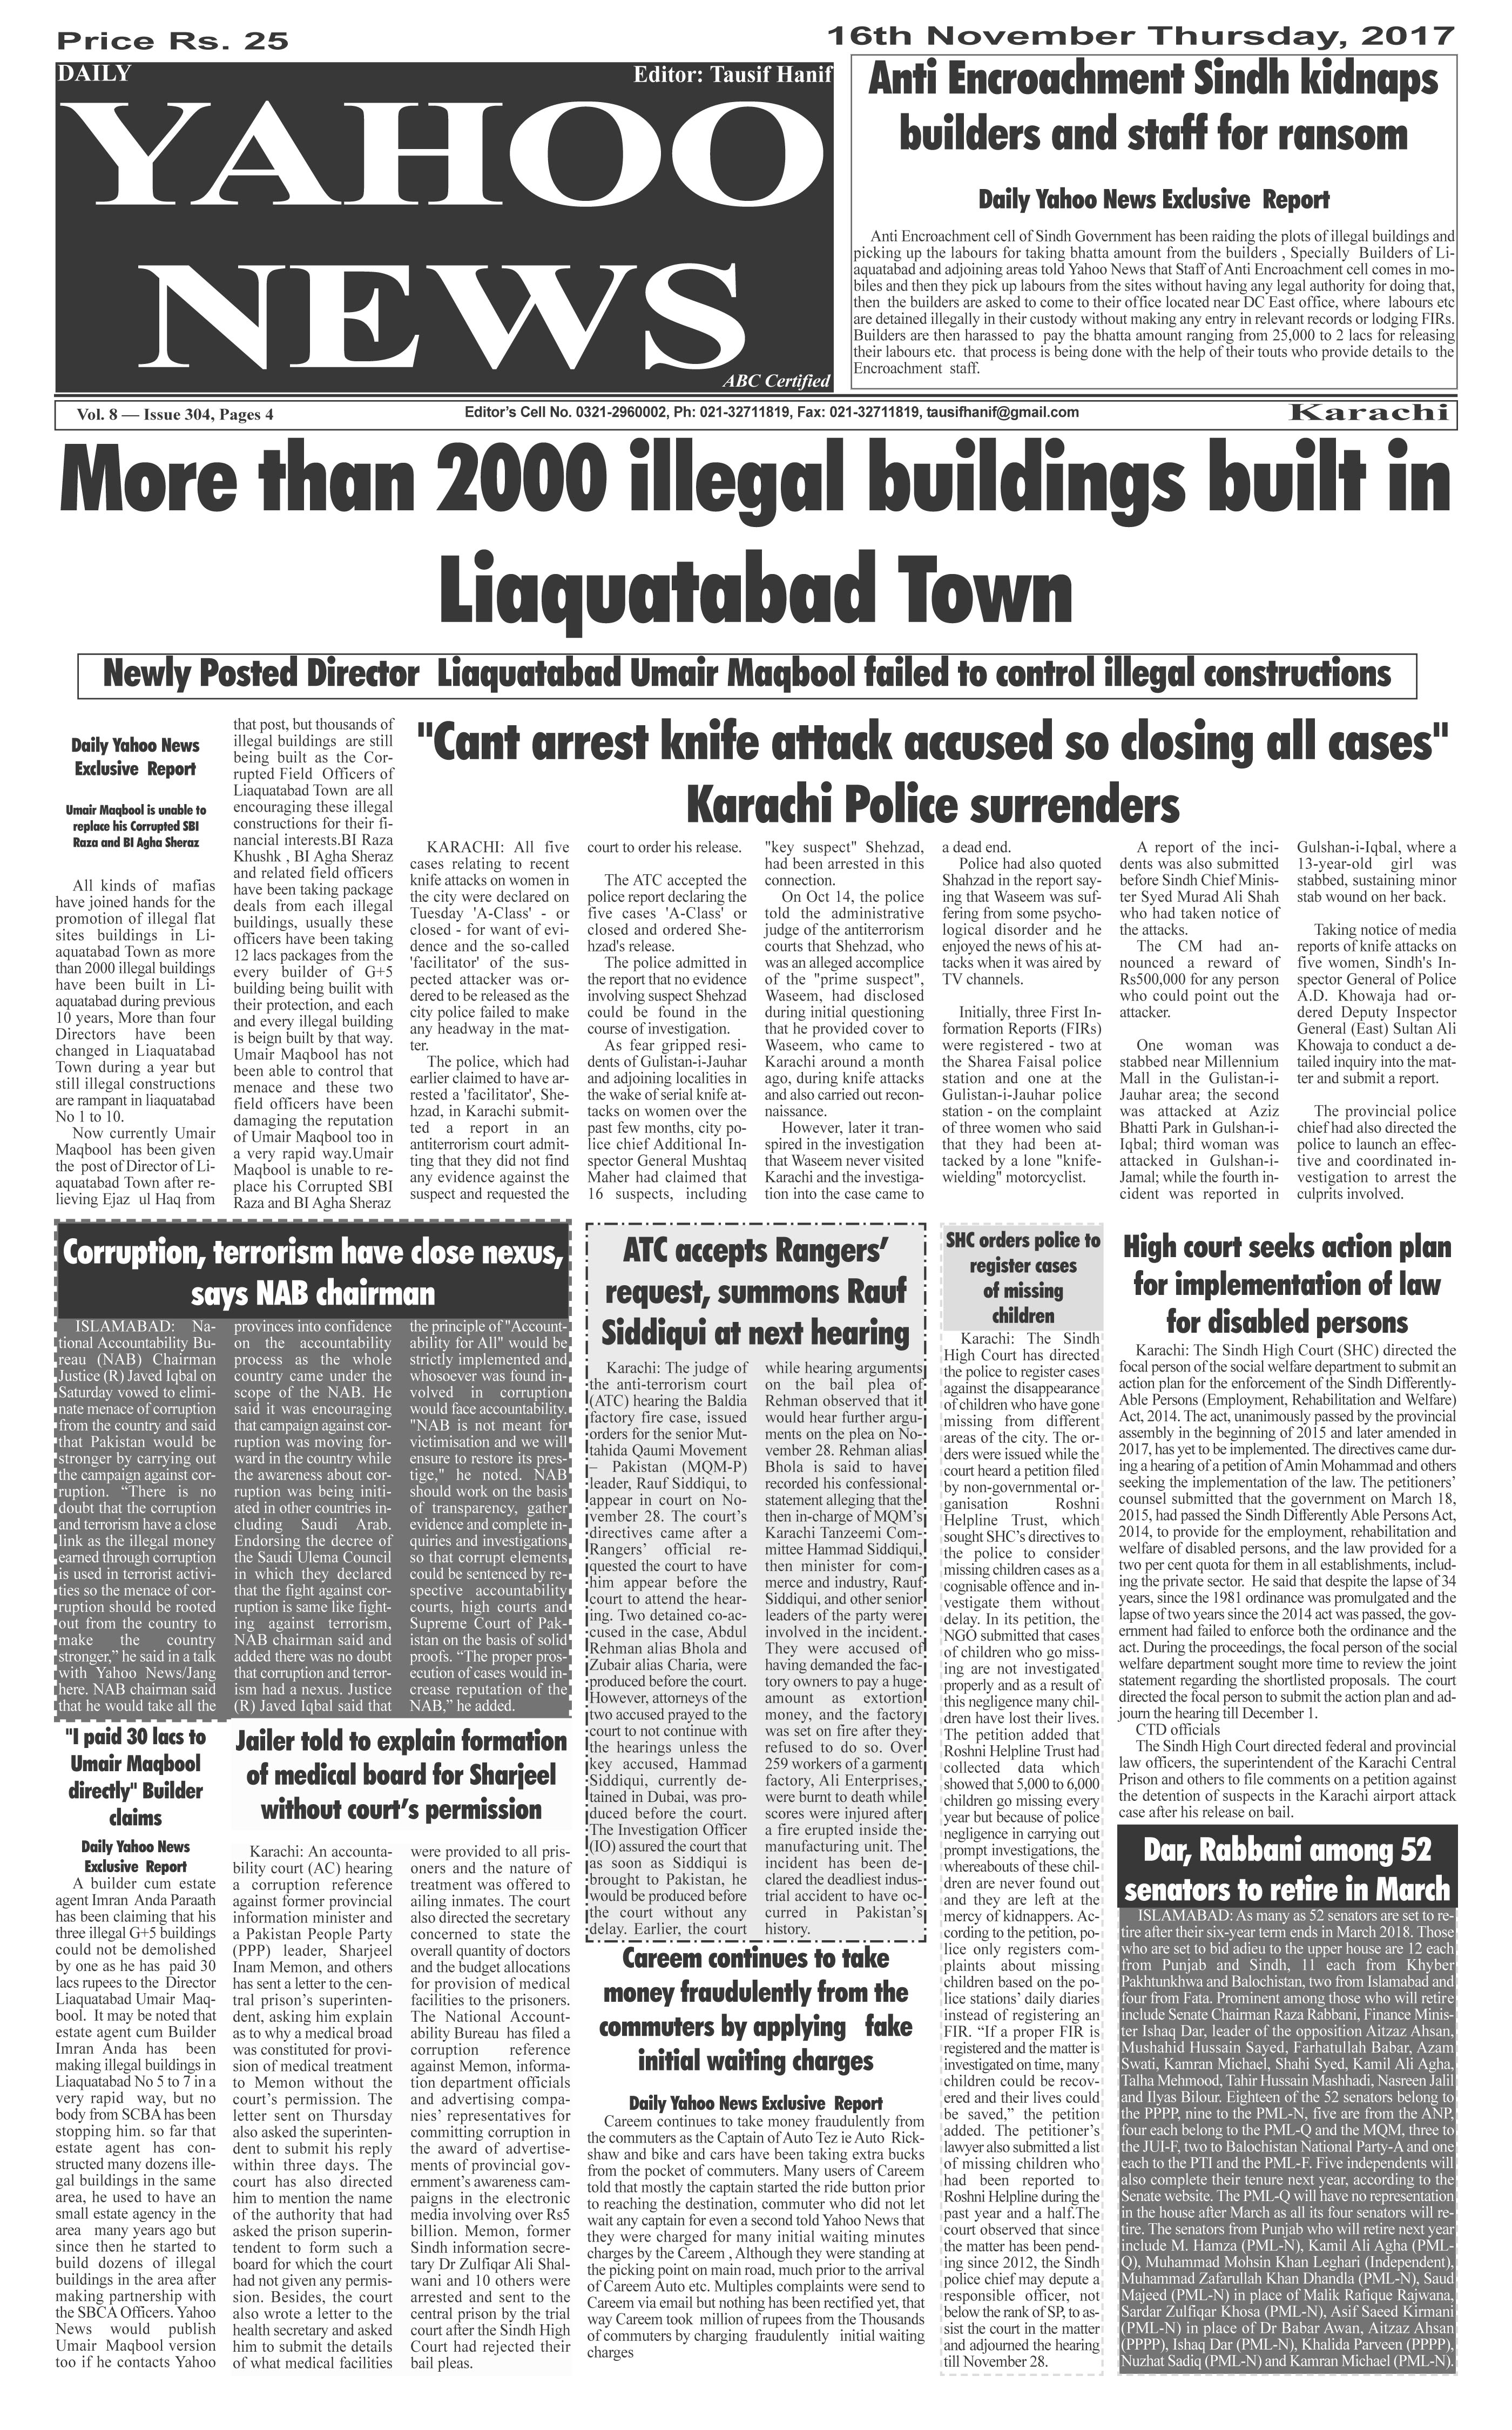 Yahoo News special Metro Edition dated 16-11-2017